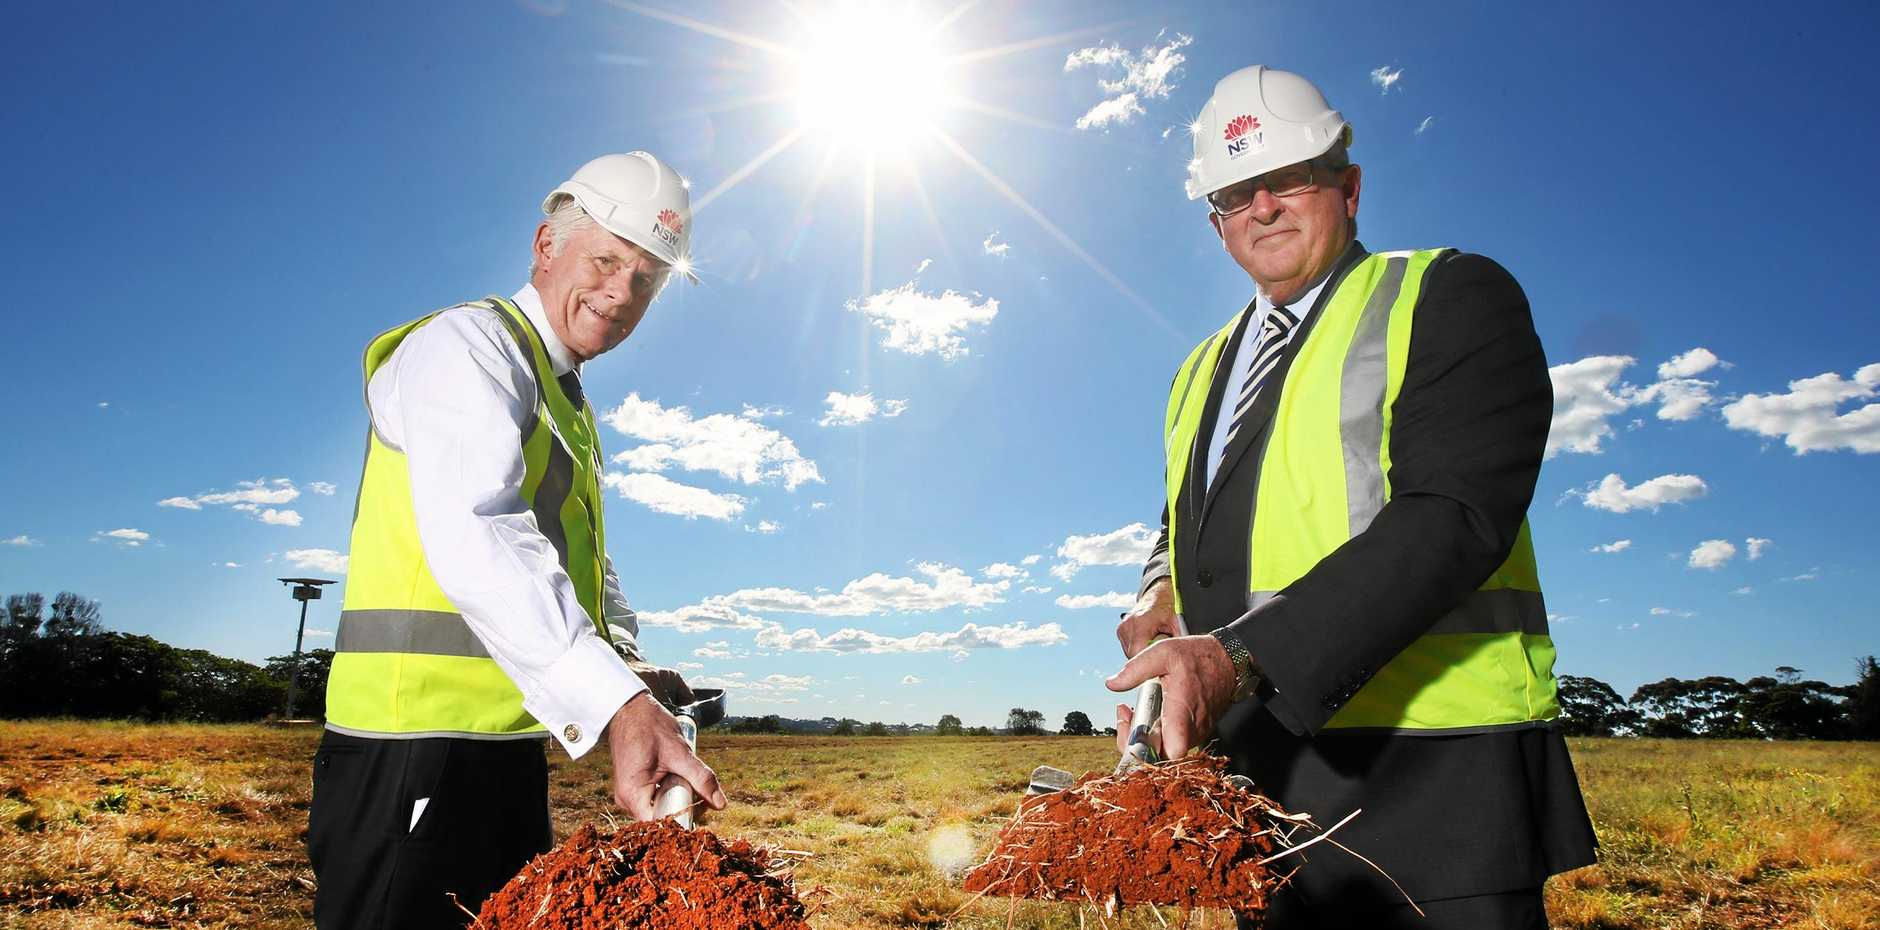 NSW Health Minister Brad Hazzard and Tweed MP Geoff Provest turn the first sod of dirt at the new Tweed Valley Hospital site.